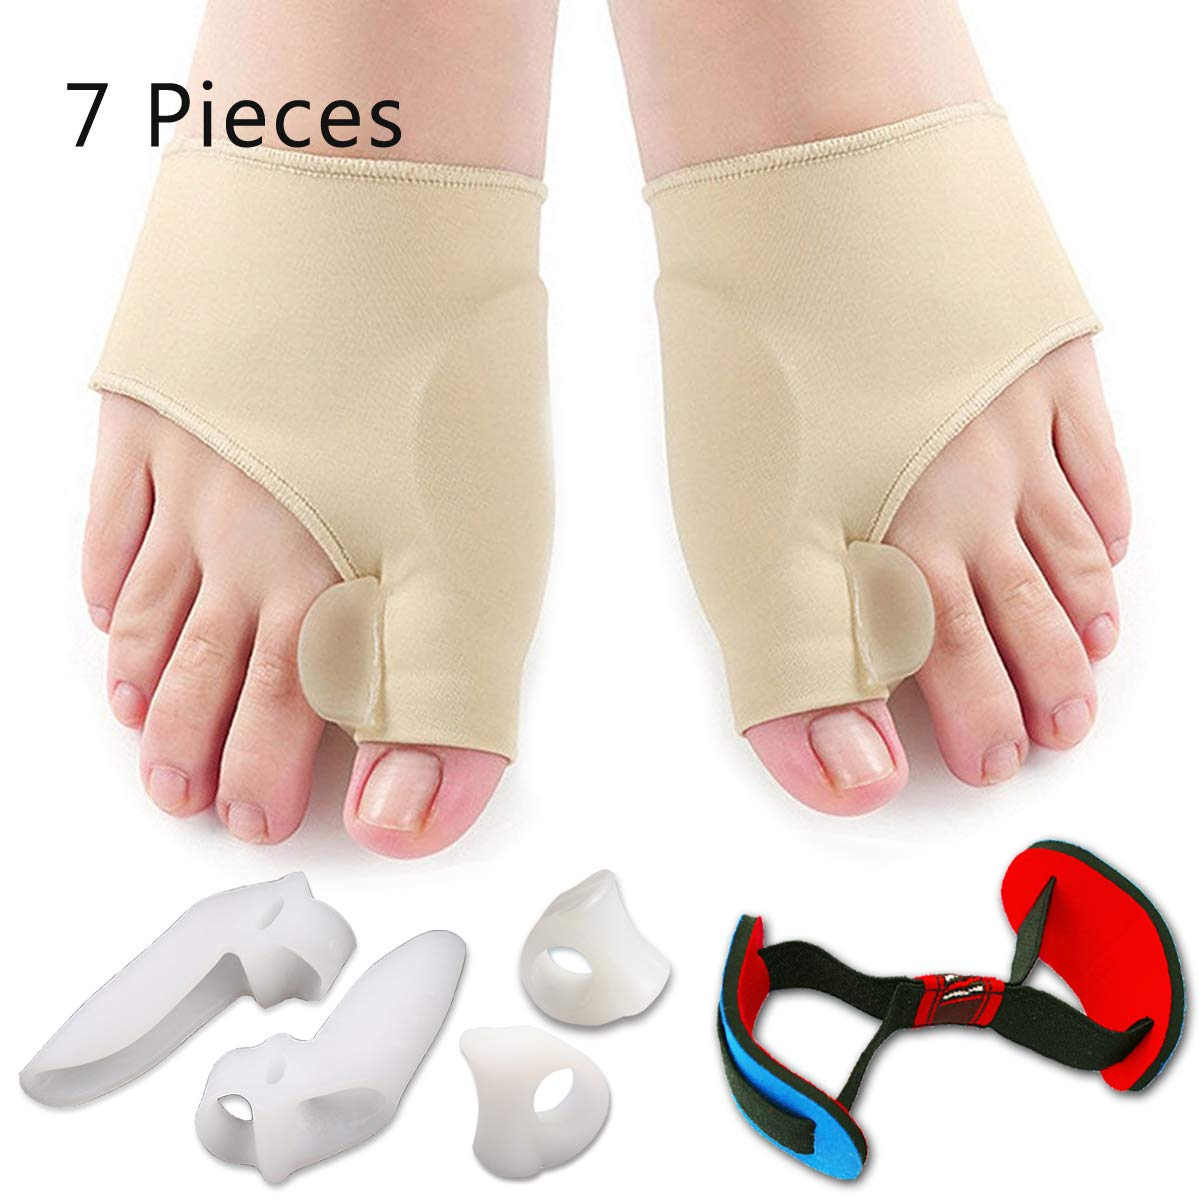 Bunion Corrector & Bunion Relief Protector Sleeves Kit - Treat Pain in Hallux Valgus, Big Toe Joint, Hammer Toe, Toe Separators Spacers Straighteners Splint Aid Surgery Treatment by Flyen